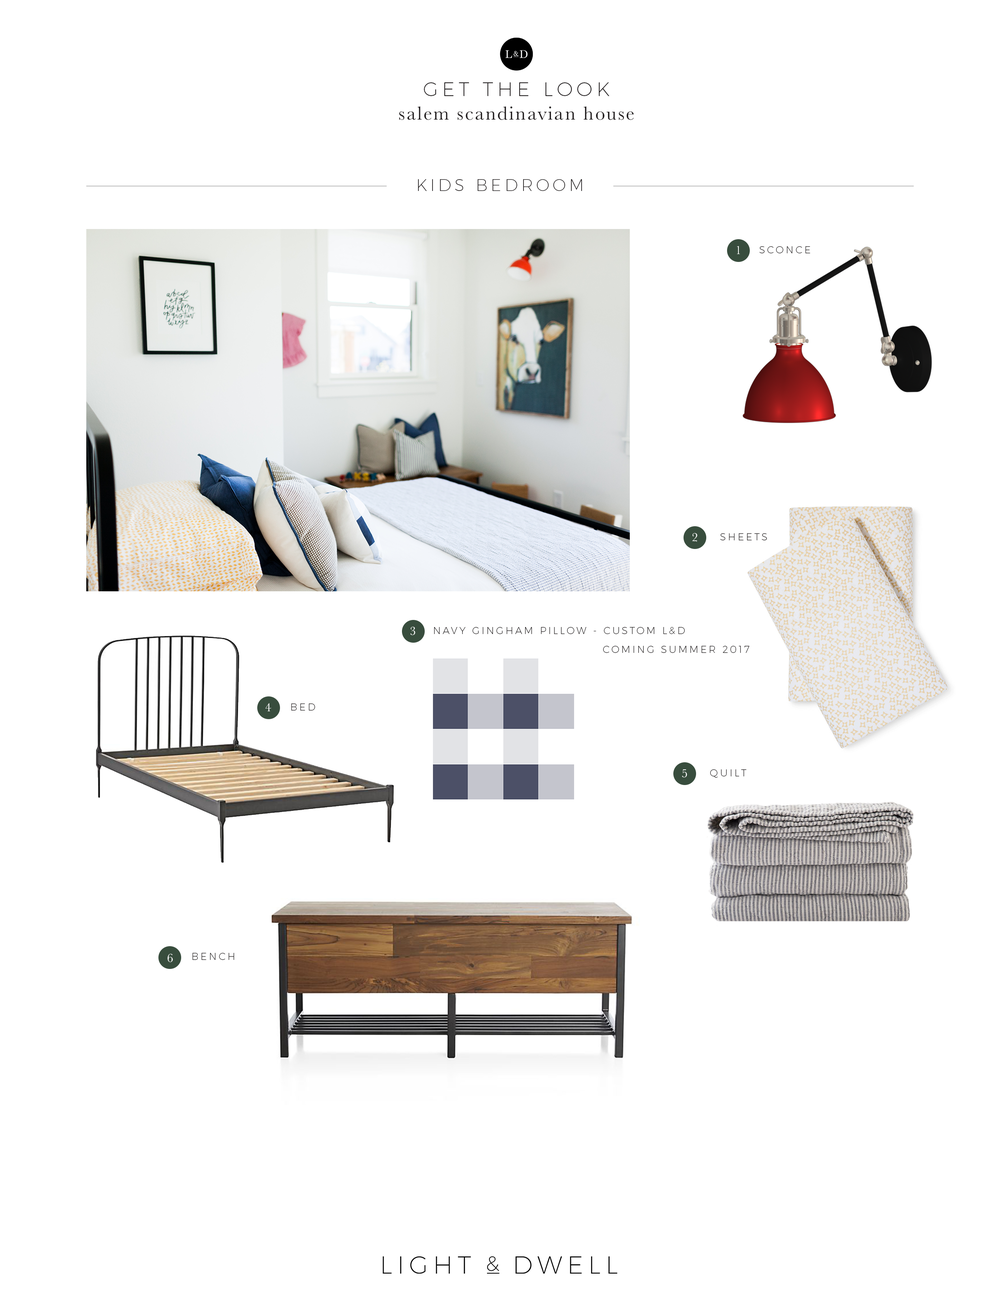 L+D_GetTheLook_Salem-Scandinavian_kids room.png